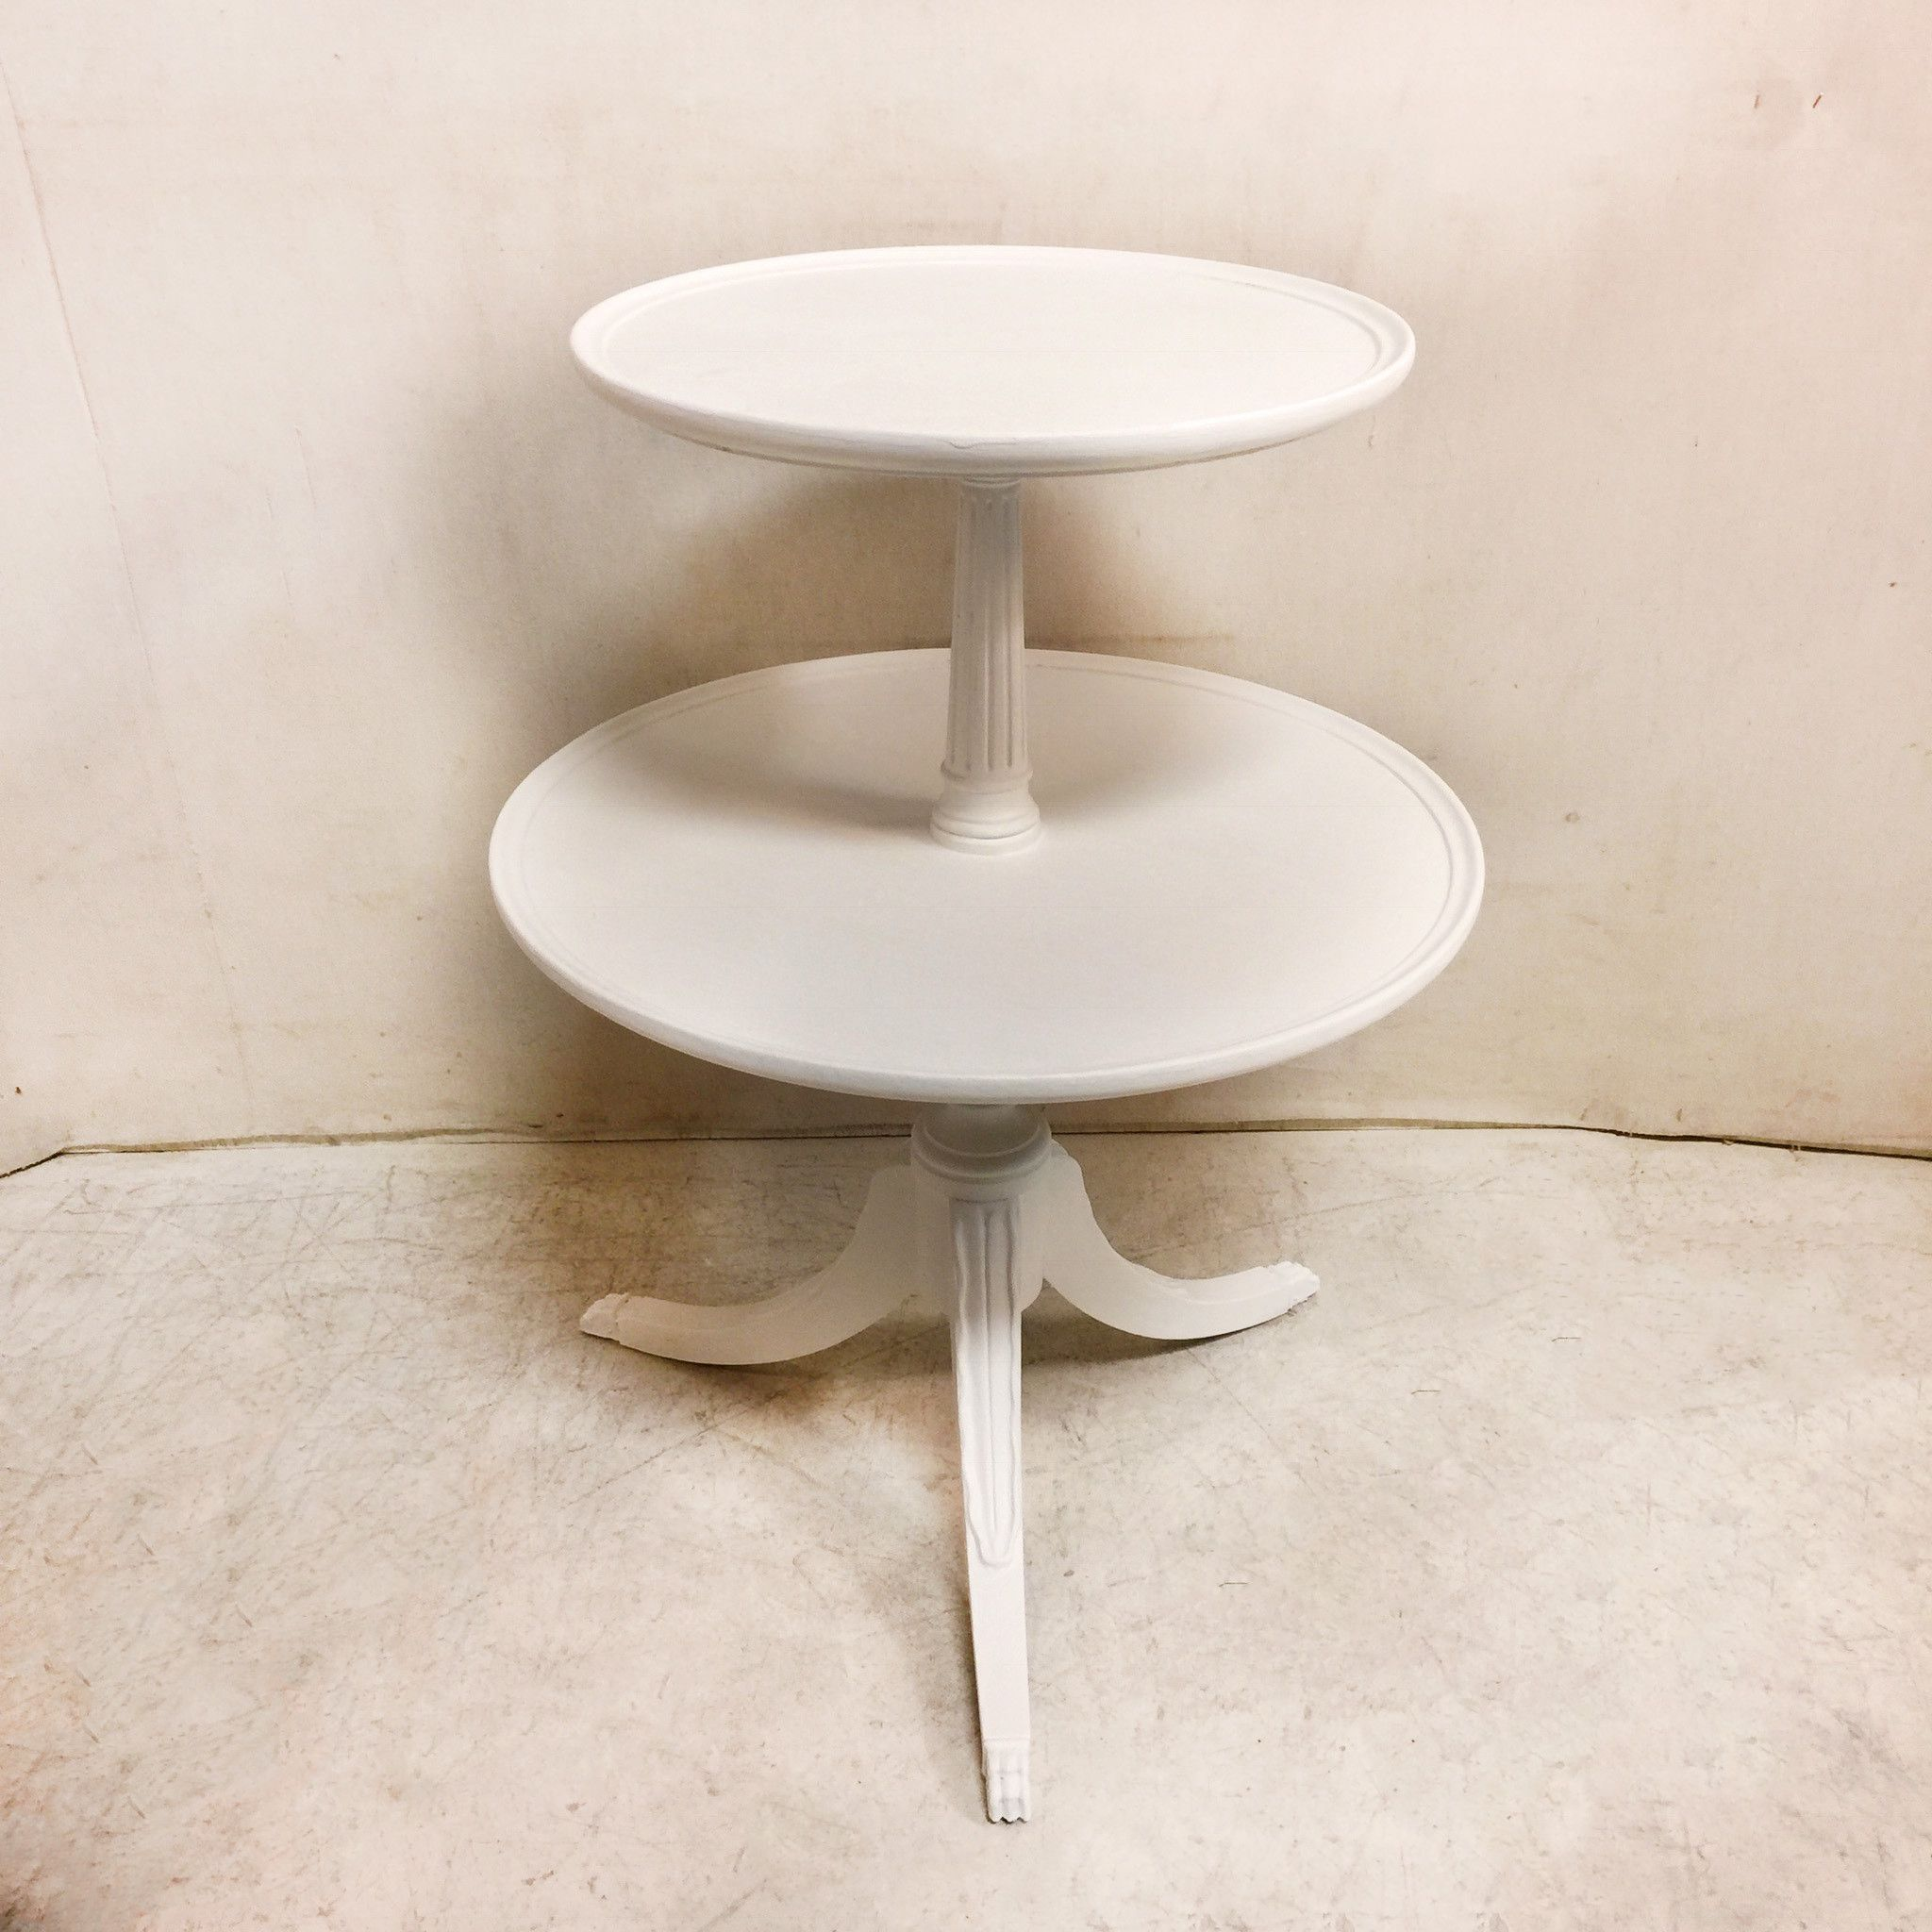 New in store! Vintage Round Whi...  #greystonetreasures #buyanoriginal  http://greystonefinefurniture.com/products/vintage-round-white-2-tier-pie-crust-table-175?utm_campaign=social_autopilot&utm_source=pin&utm_medium=pin